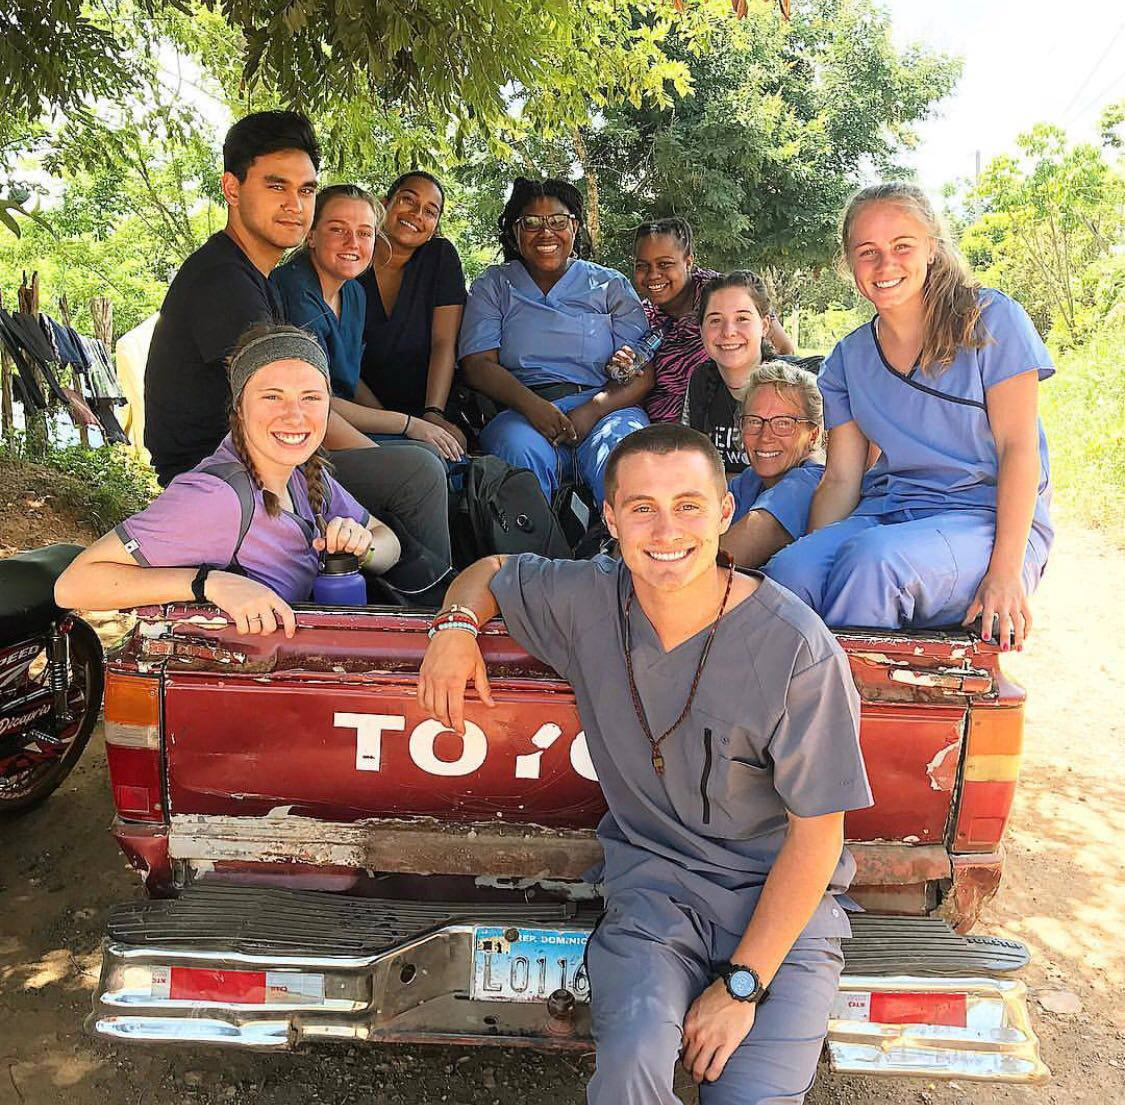 Truck bed commute during mobile clinic in the Dominical Republic